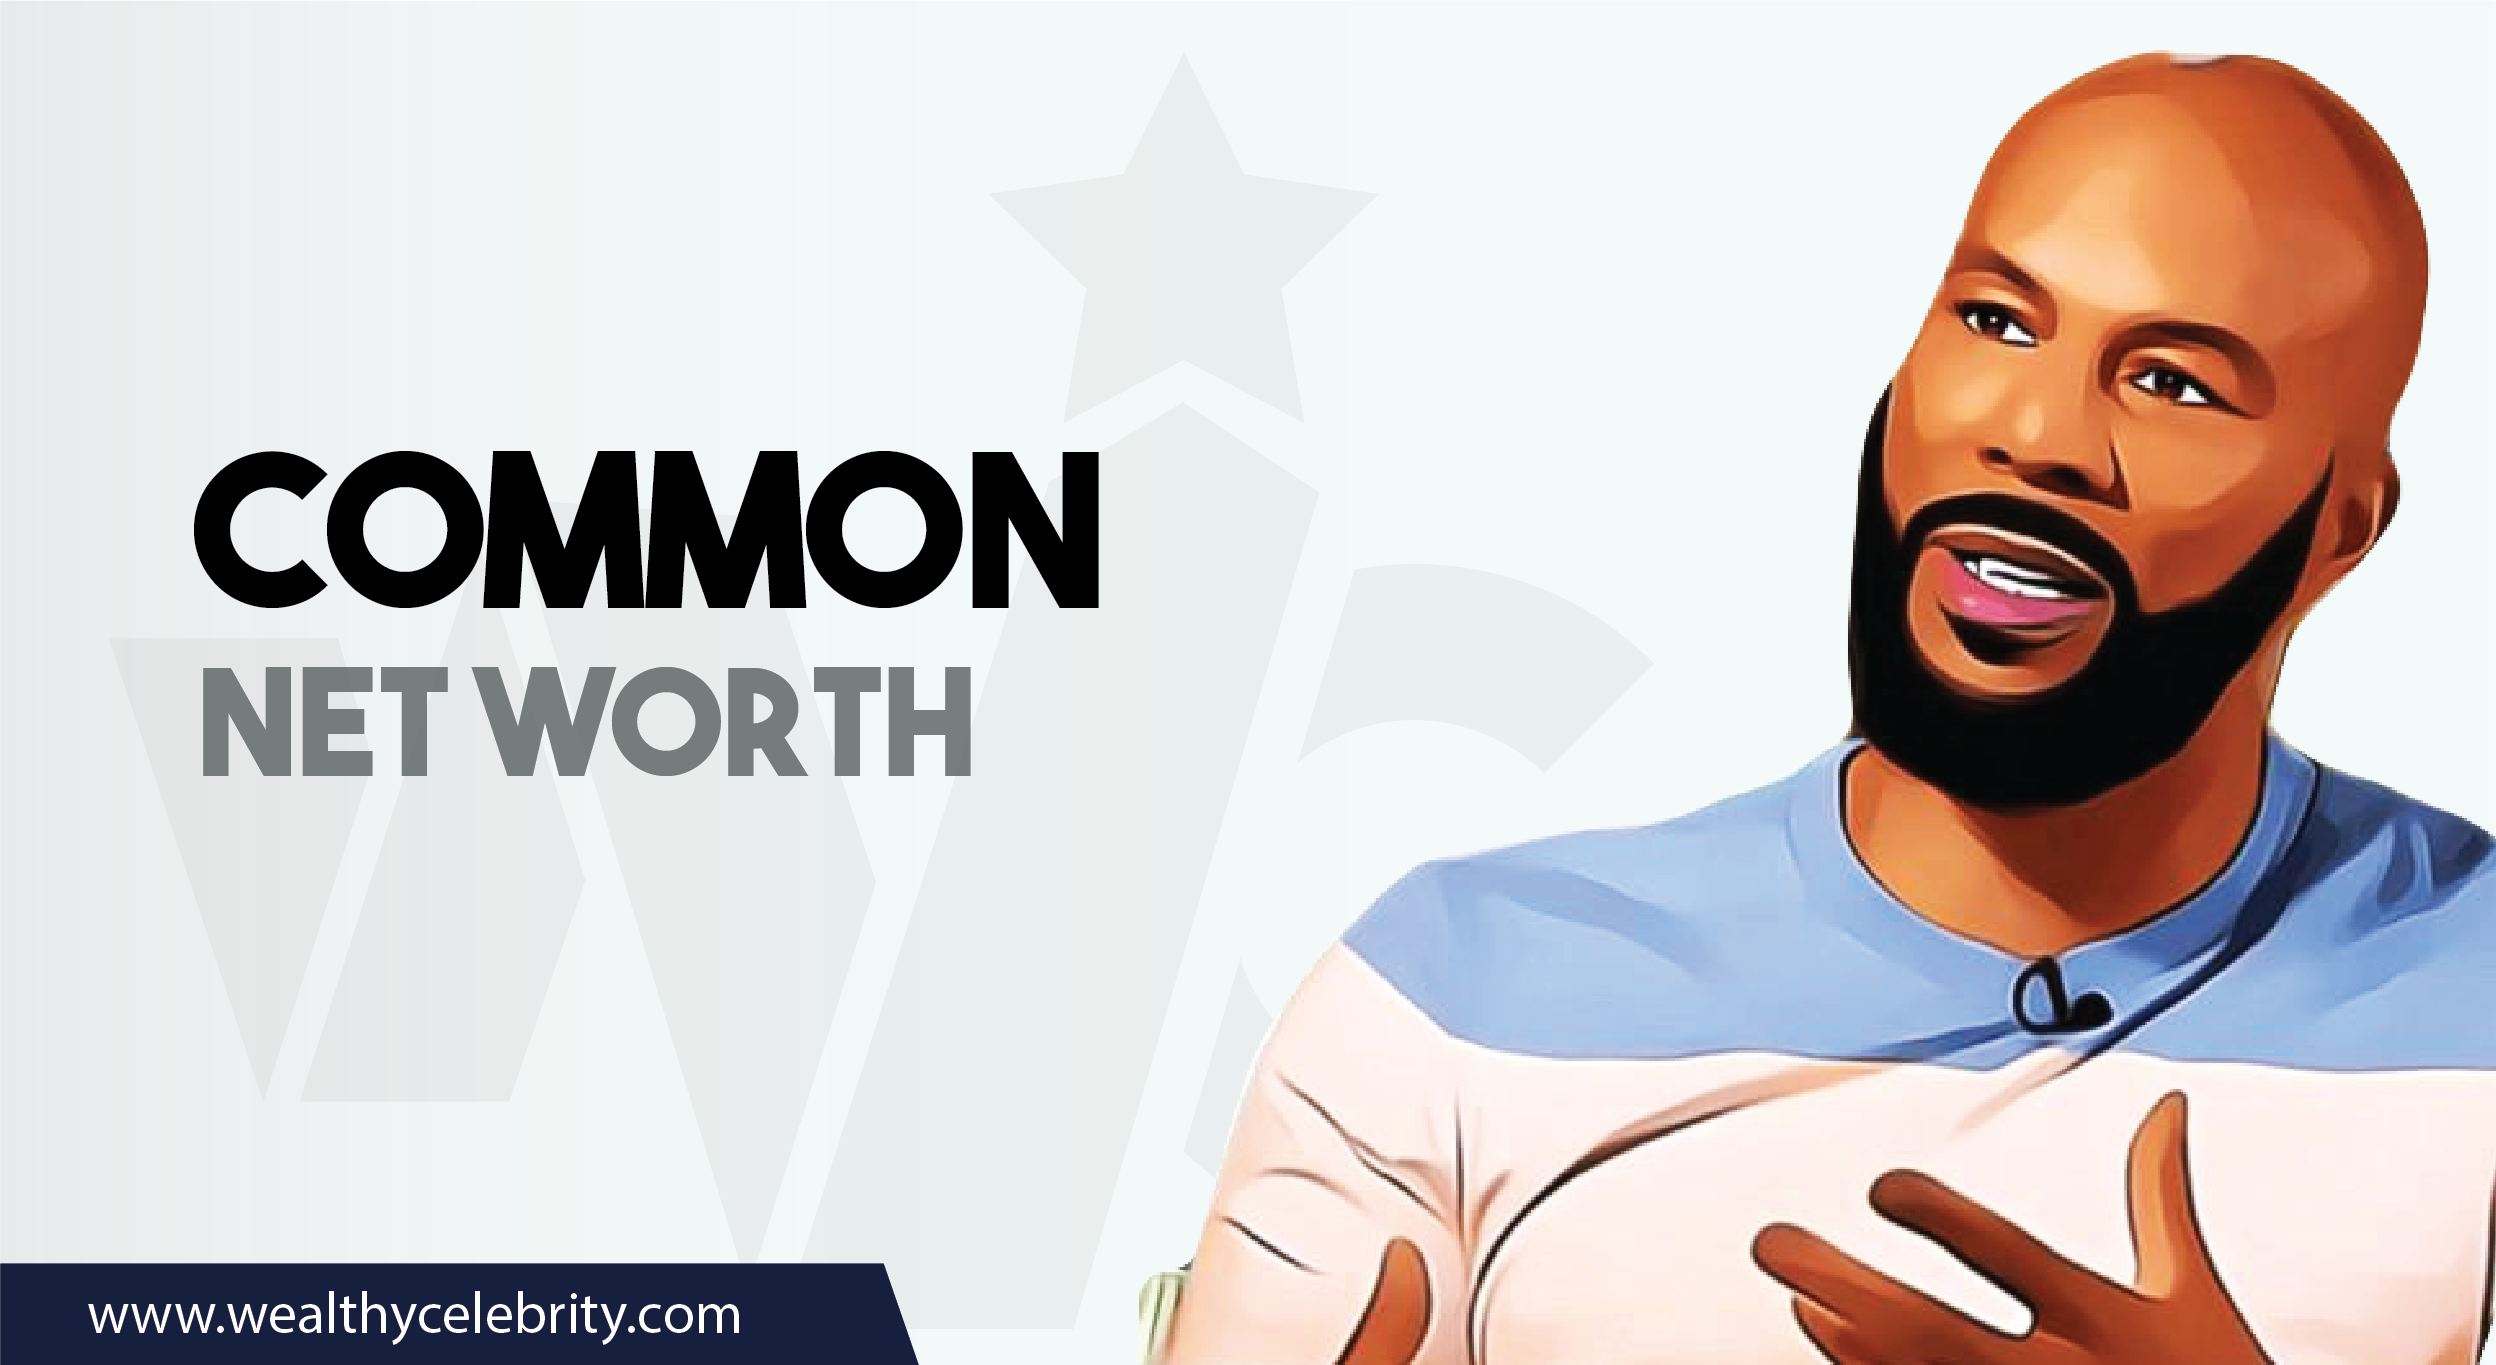 Common_Net Worth